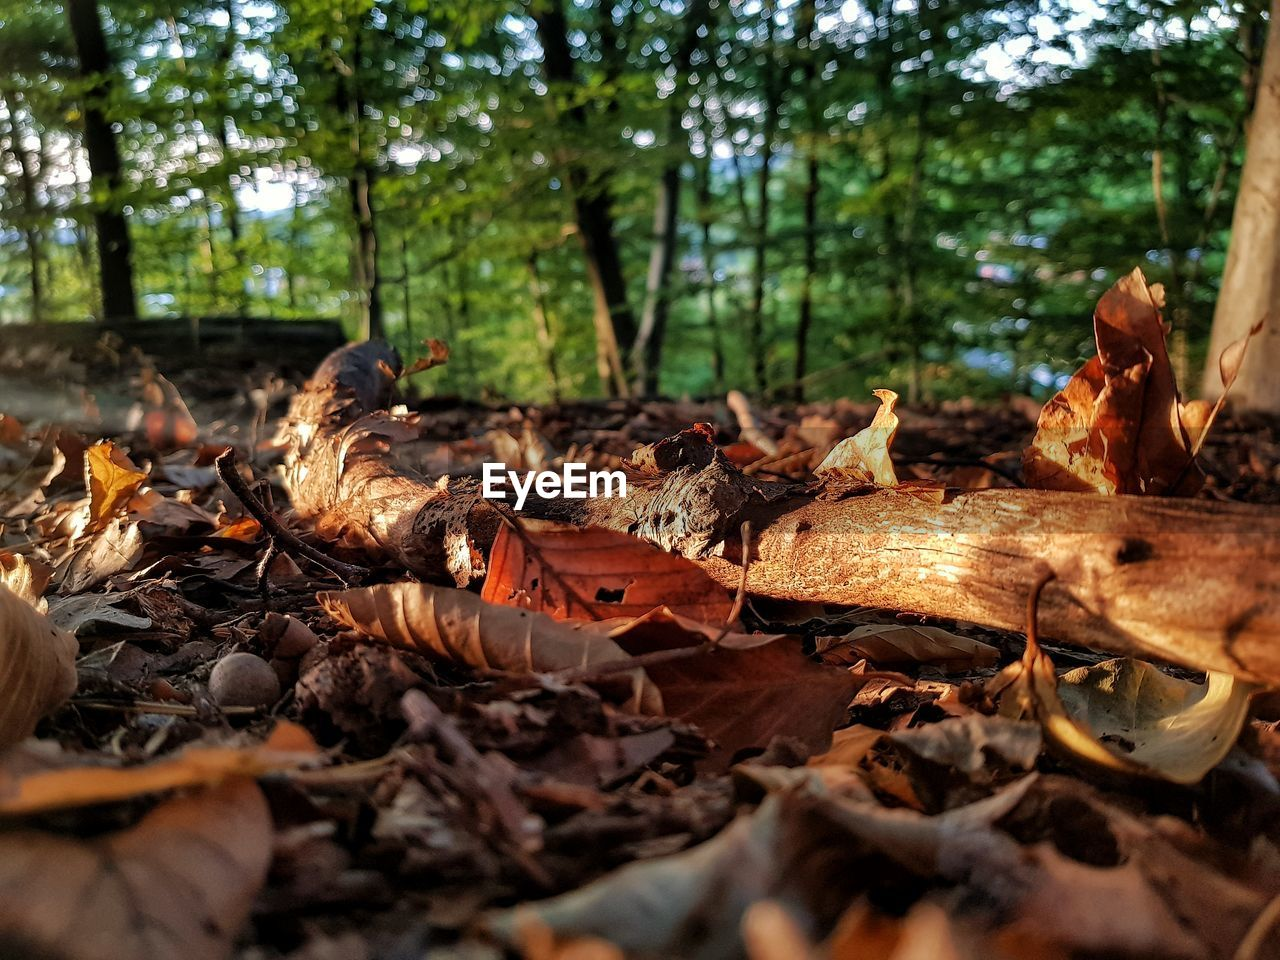 land, leaf, plant part, nature, leaves, autumn, forest, tree, dry, selective focus, day, falling, no people, plant, change, field, outdoors, sunlight, close-up, wood - material, surface level, dried